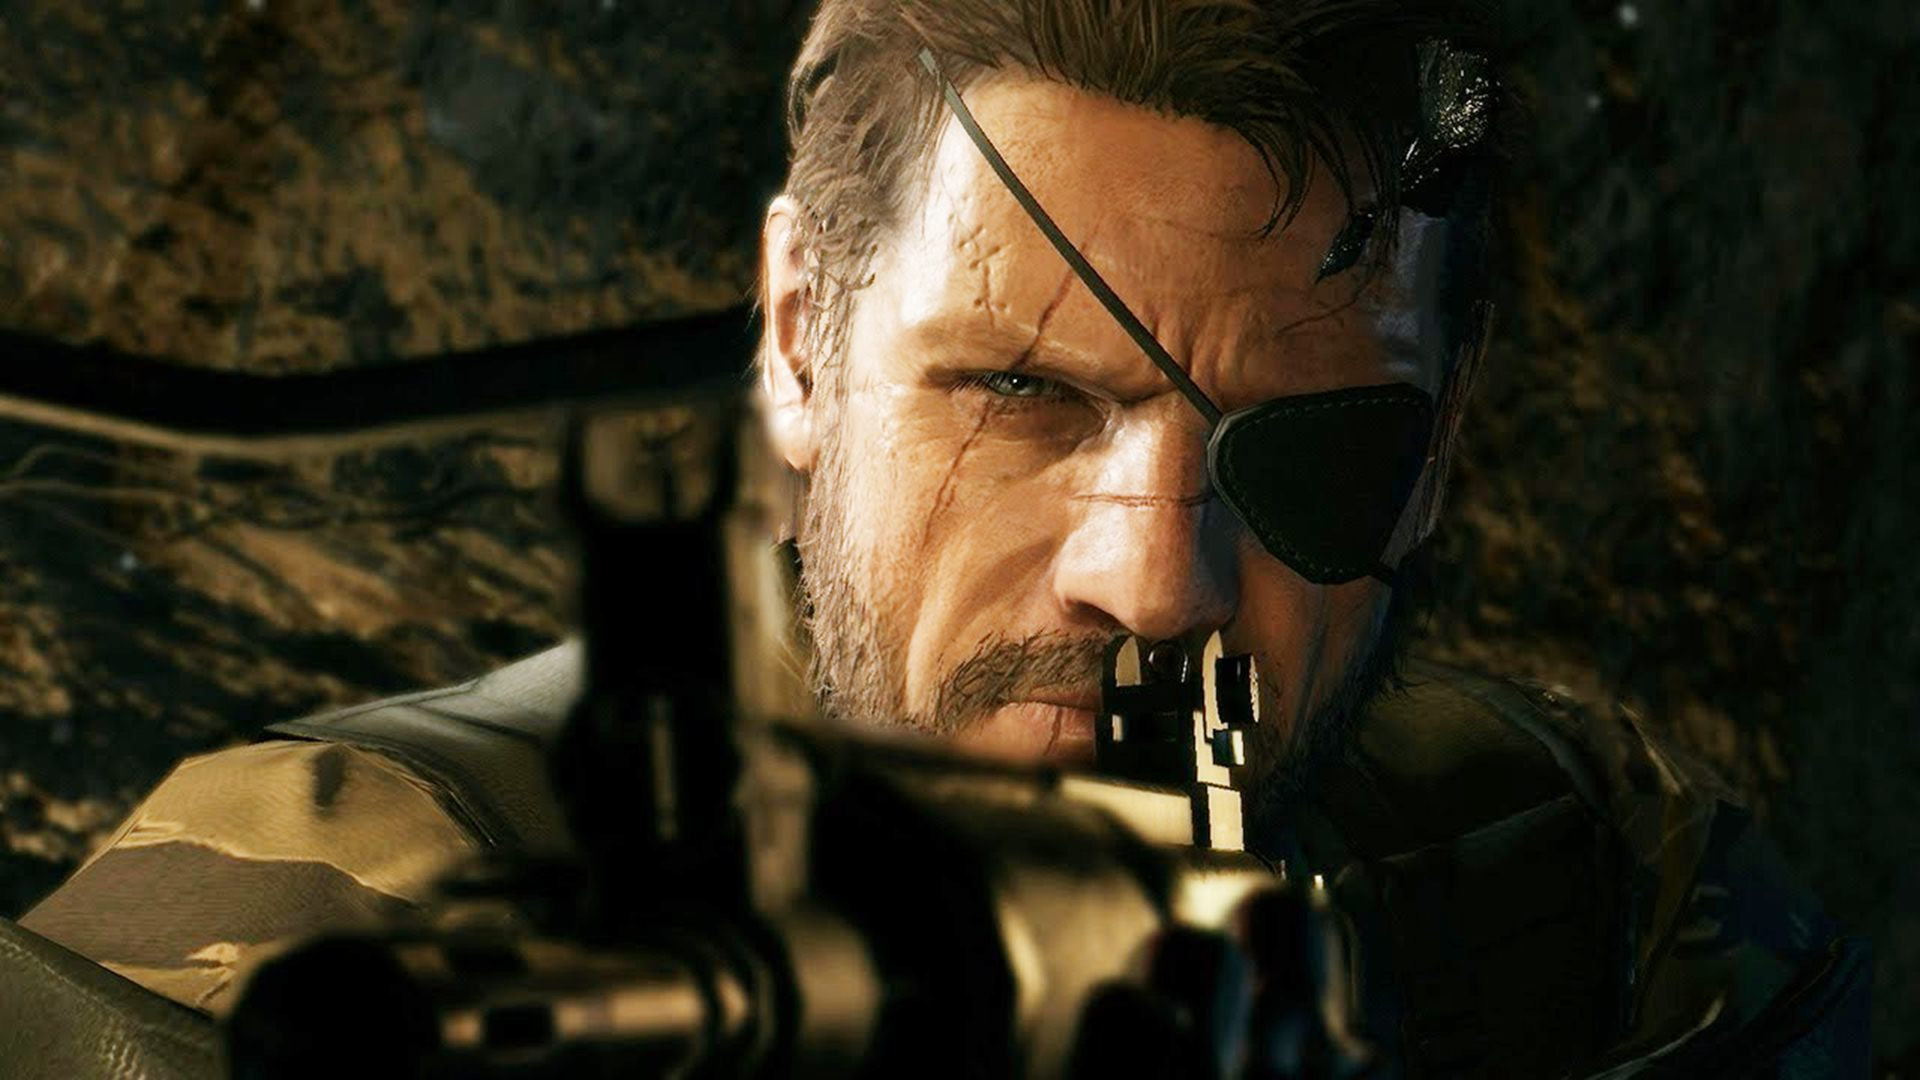 بازی MGSV: The Phantom Pain در Gamescom 2015